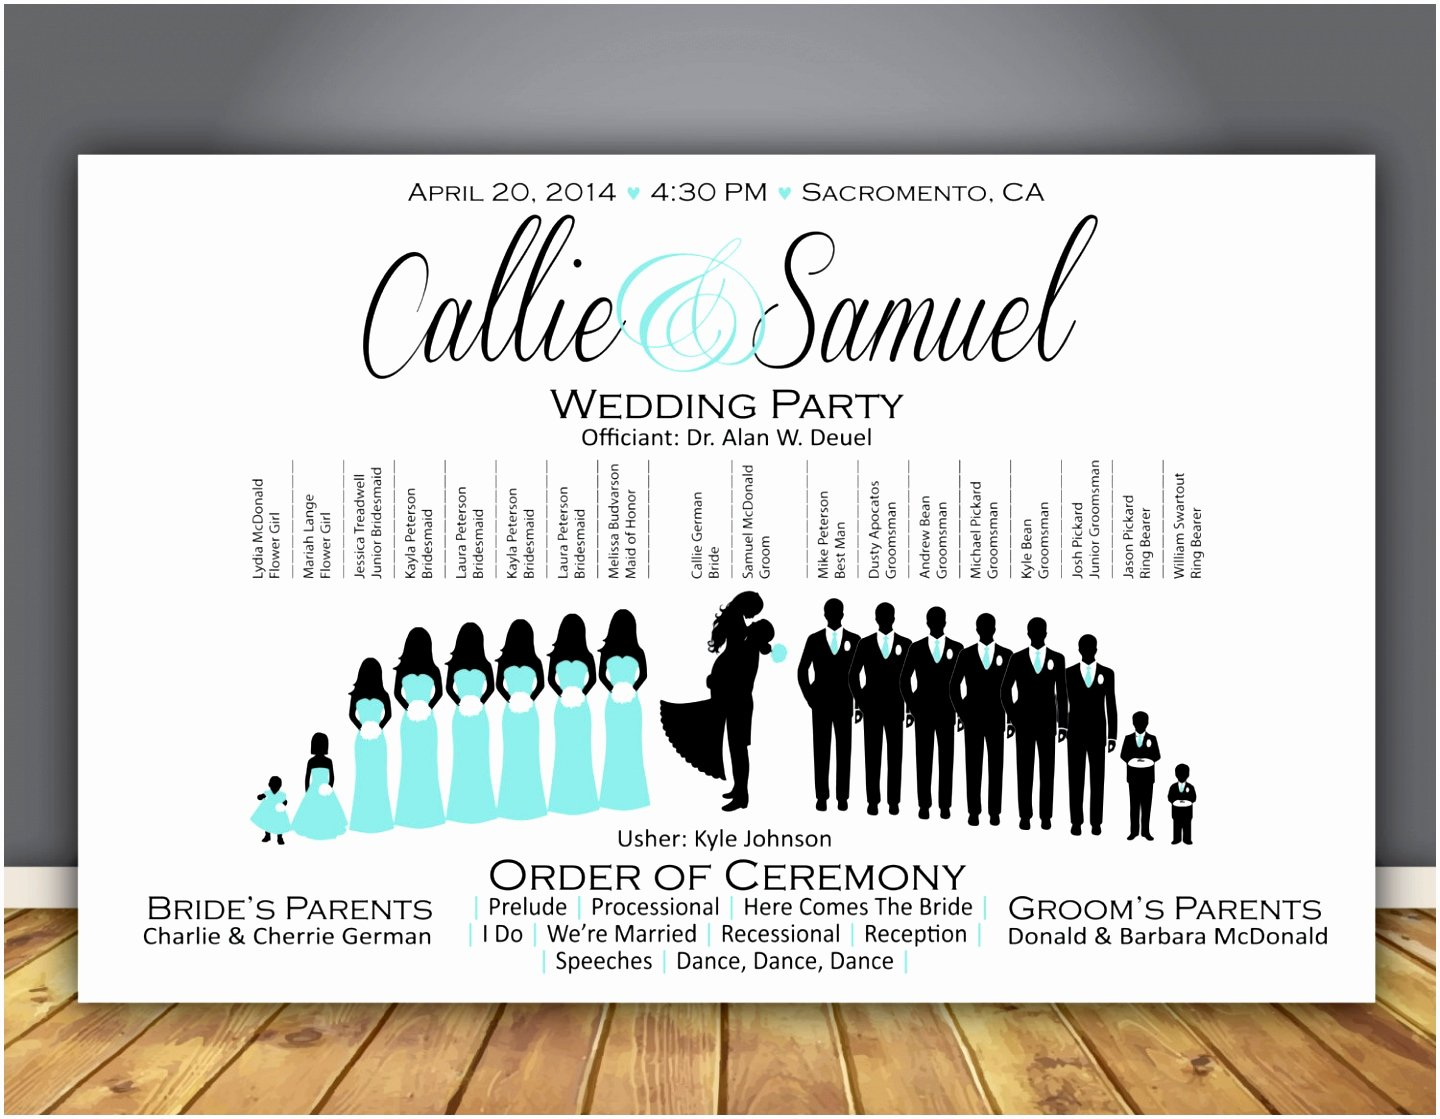 Wedding Party Lineup Template Inspirational 10 Wedding Line Up Template Ouaii